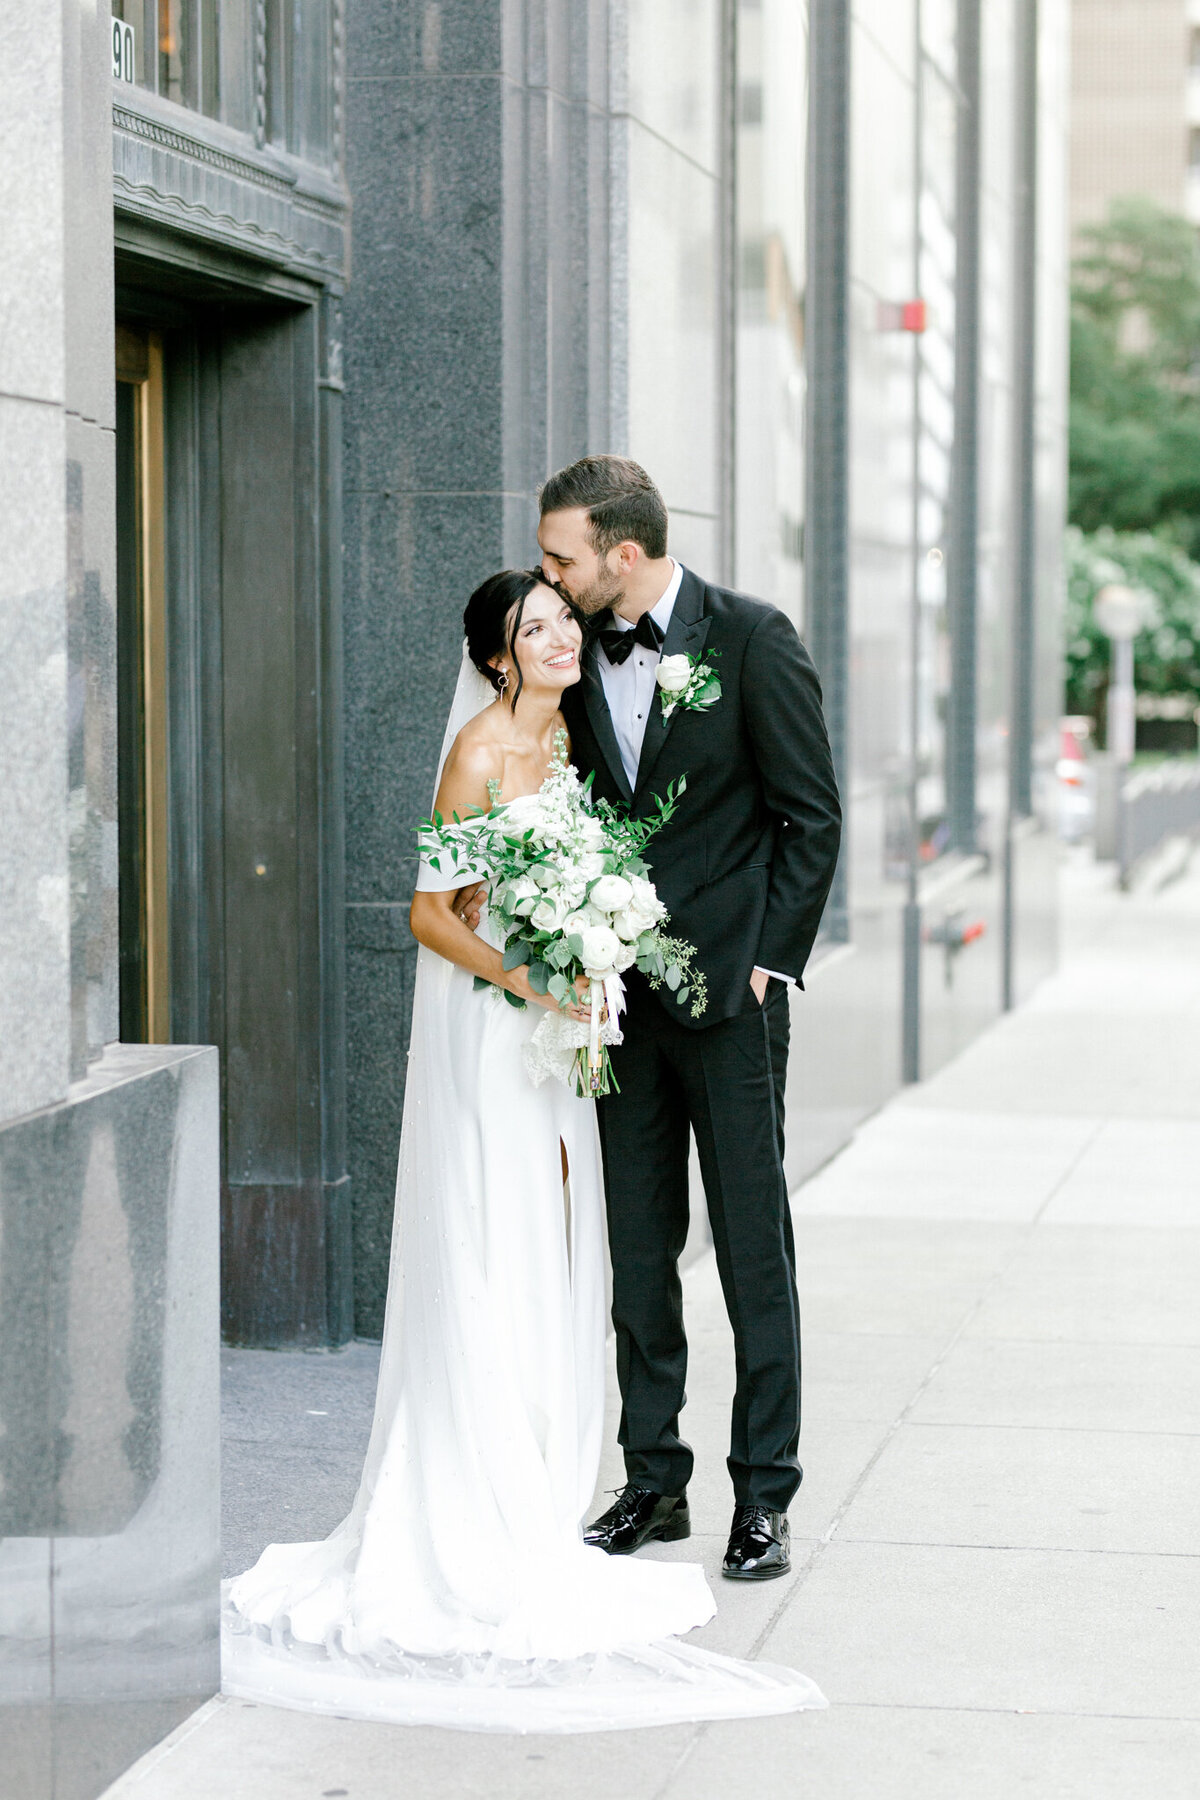 Hope & Zack's Wedding at the Carlisle Room | Dallas Wedding Photographer | Sami Kathryn Photography-87